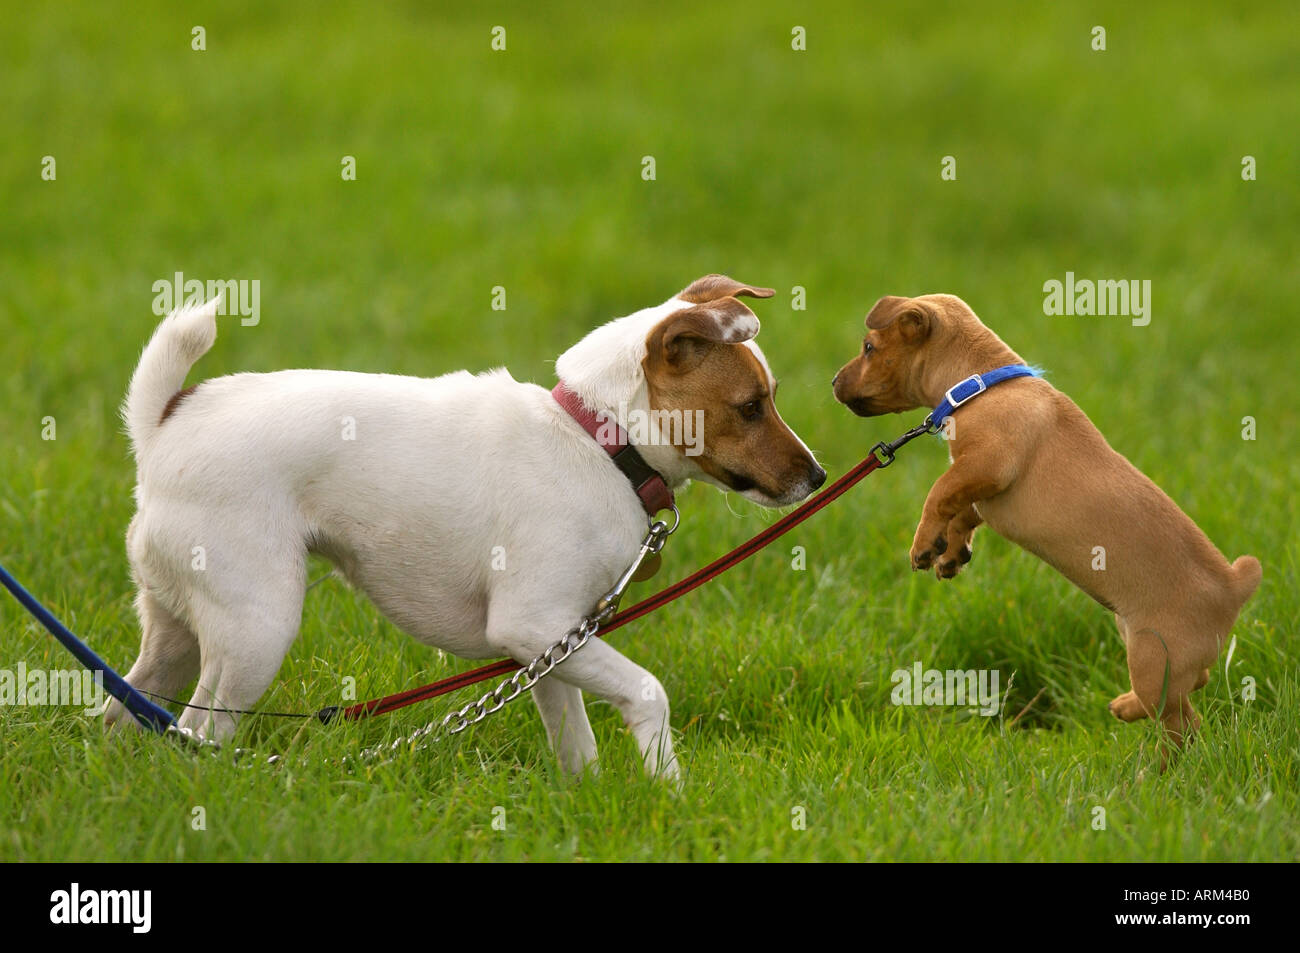 TWO DOGS PLAYING WHILE ON THEIR LEADS - Stock Image